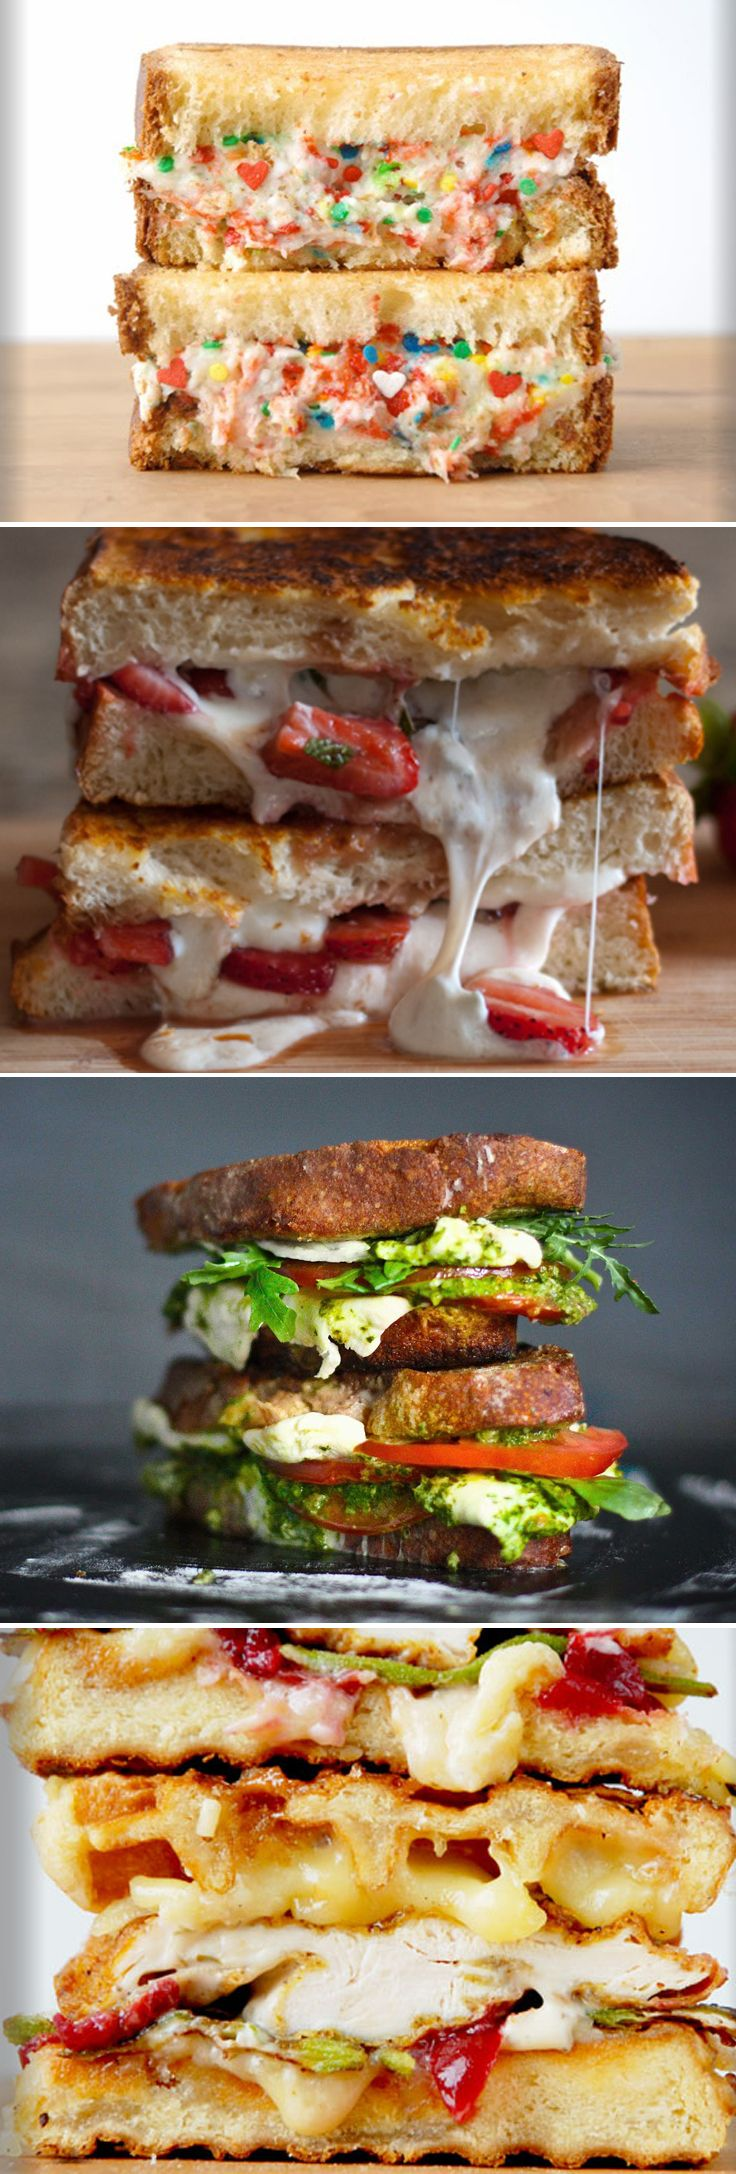 Creative #grilled #cheese sandwich recipes including: Funfetti & Riccotta Cheese, Burrata Balsamic Strawberry, Chicken & Waffle, and Caprese & Fresh Mozzarella are but a few of the easy #GrilledCheese recipes I hope you'll enjoy as much as my family did. http://www.cheeserank.com/culture/insane-grilled-cheeses-recipes-sandwiches/#!/image-27